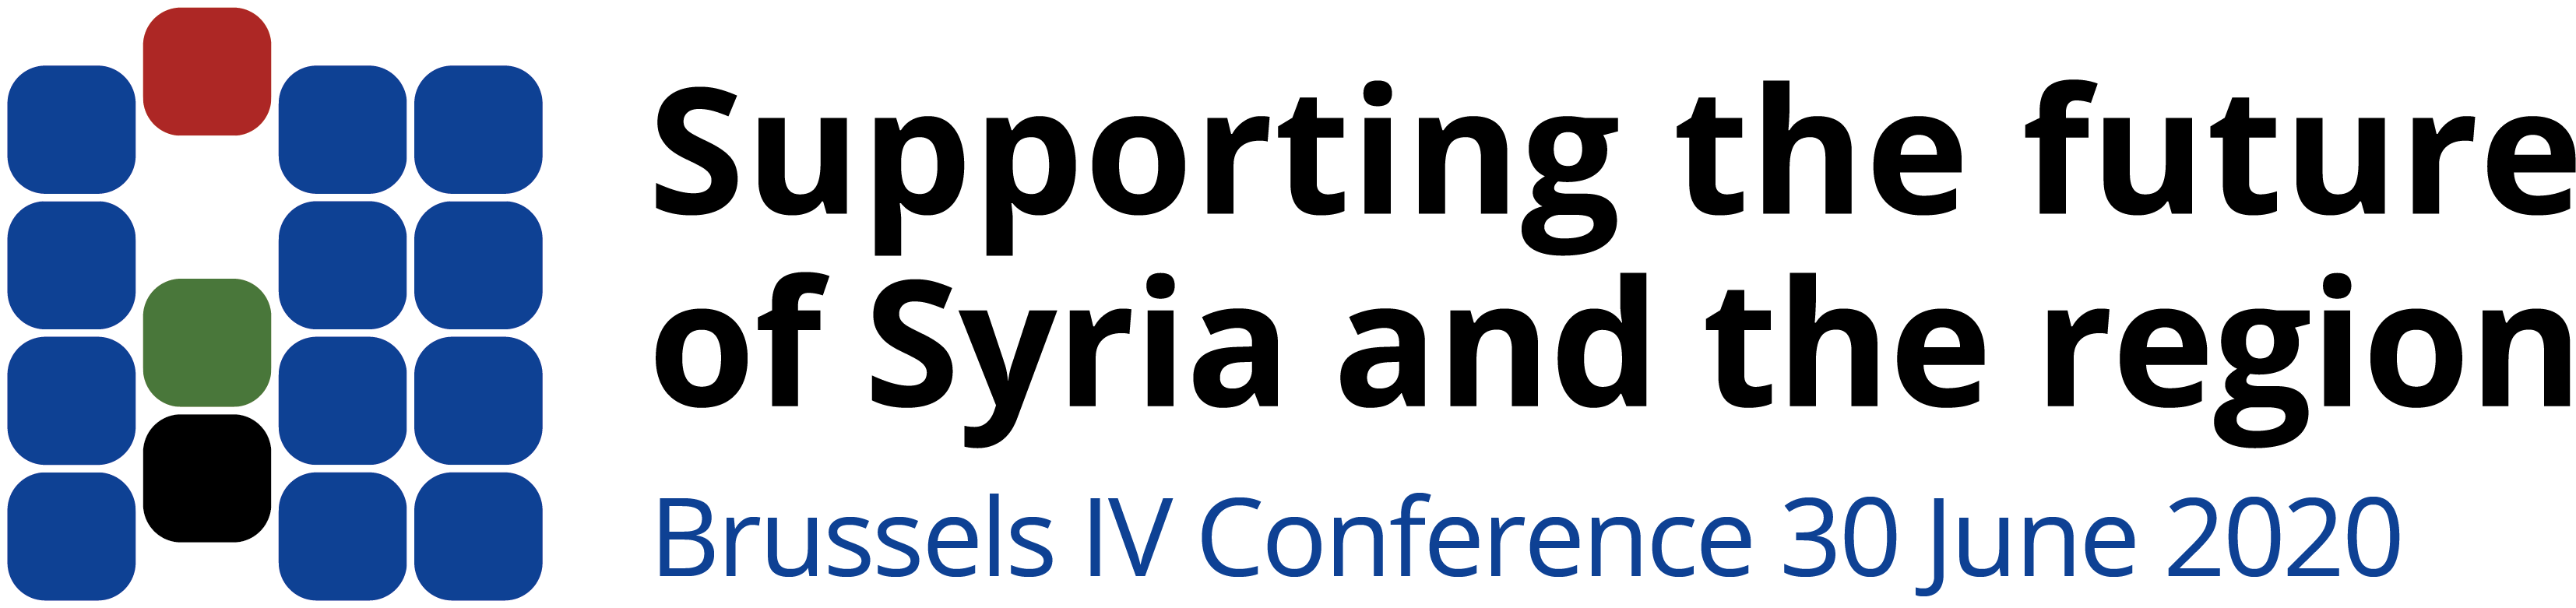 Supporting the future of Syria and the region - Brussels IV Conference